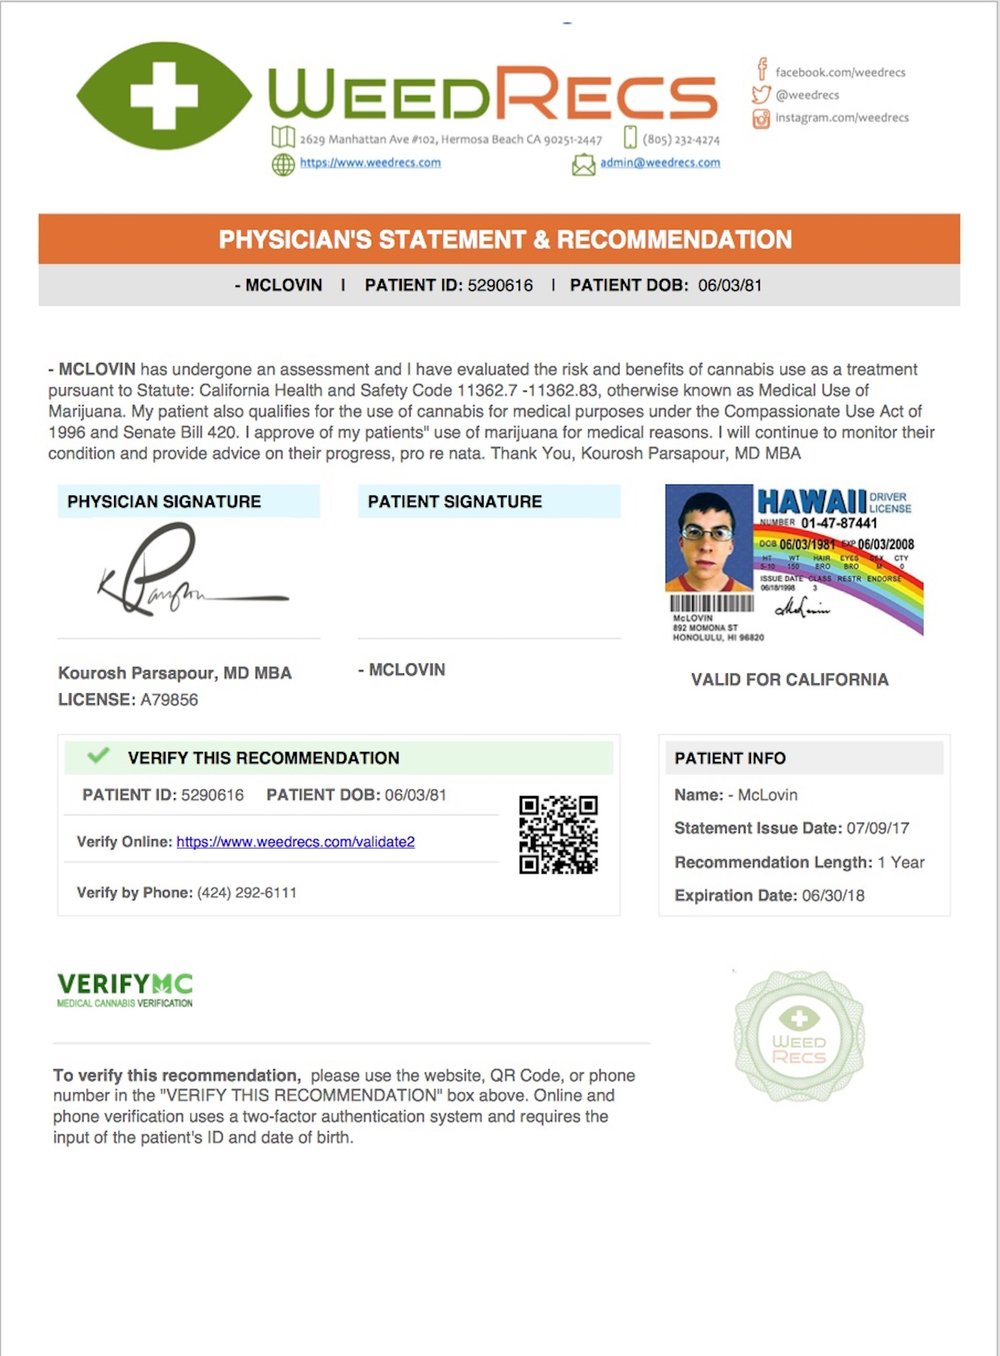 Here's an example of what our recommendation certificates look like.